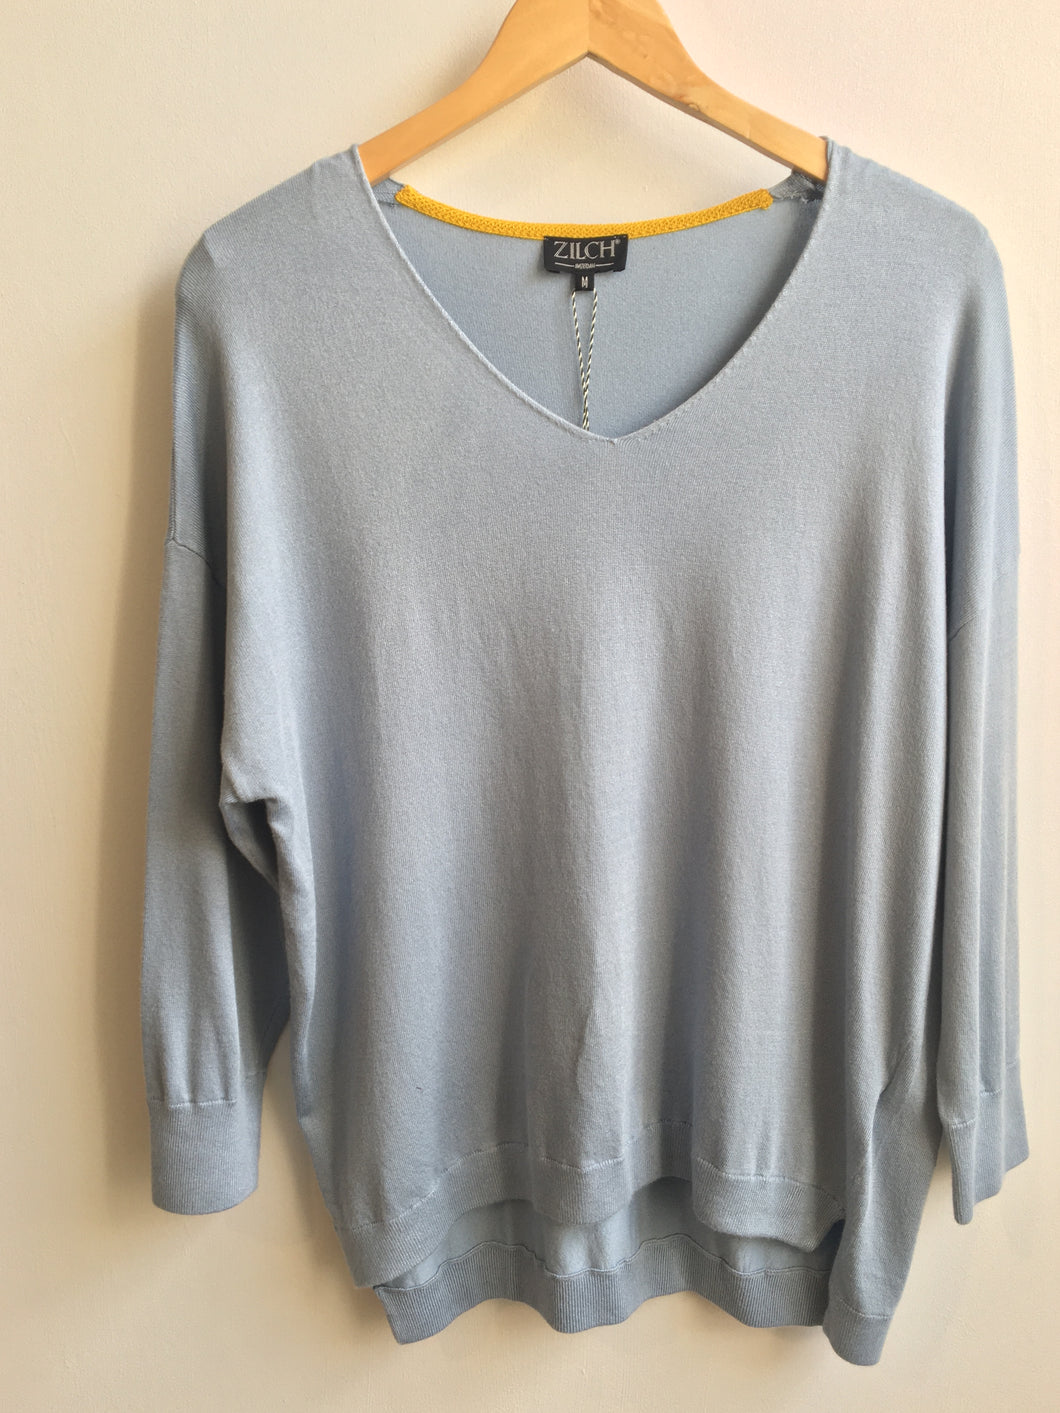 Zilch v-neck bamboo sweater in Heaven blue - CW CW